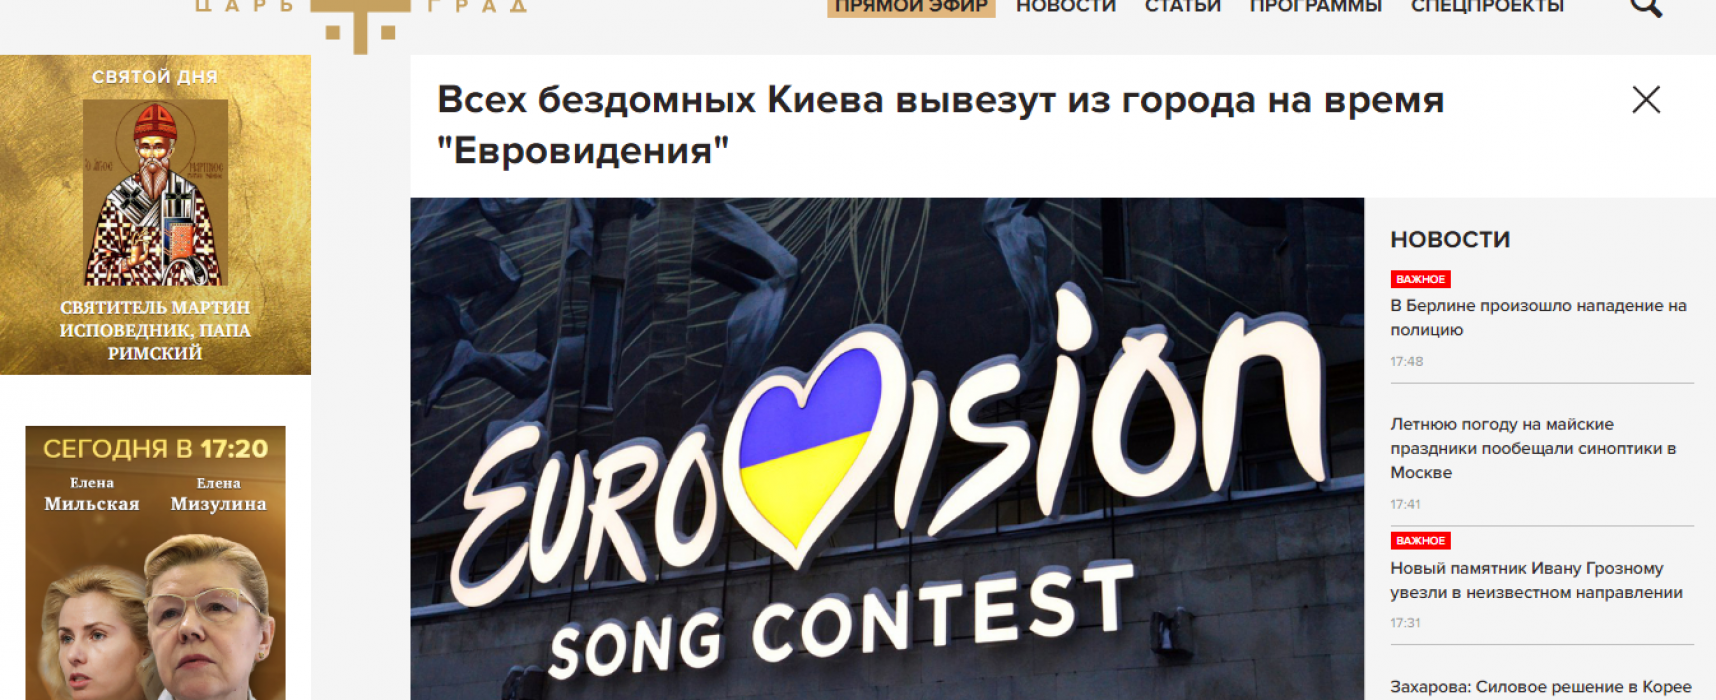 Fake: Kyiv Homeless to be Run out of Town for Eurovision